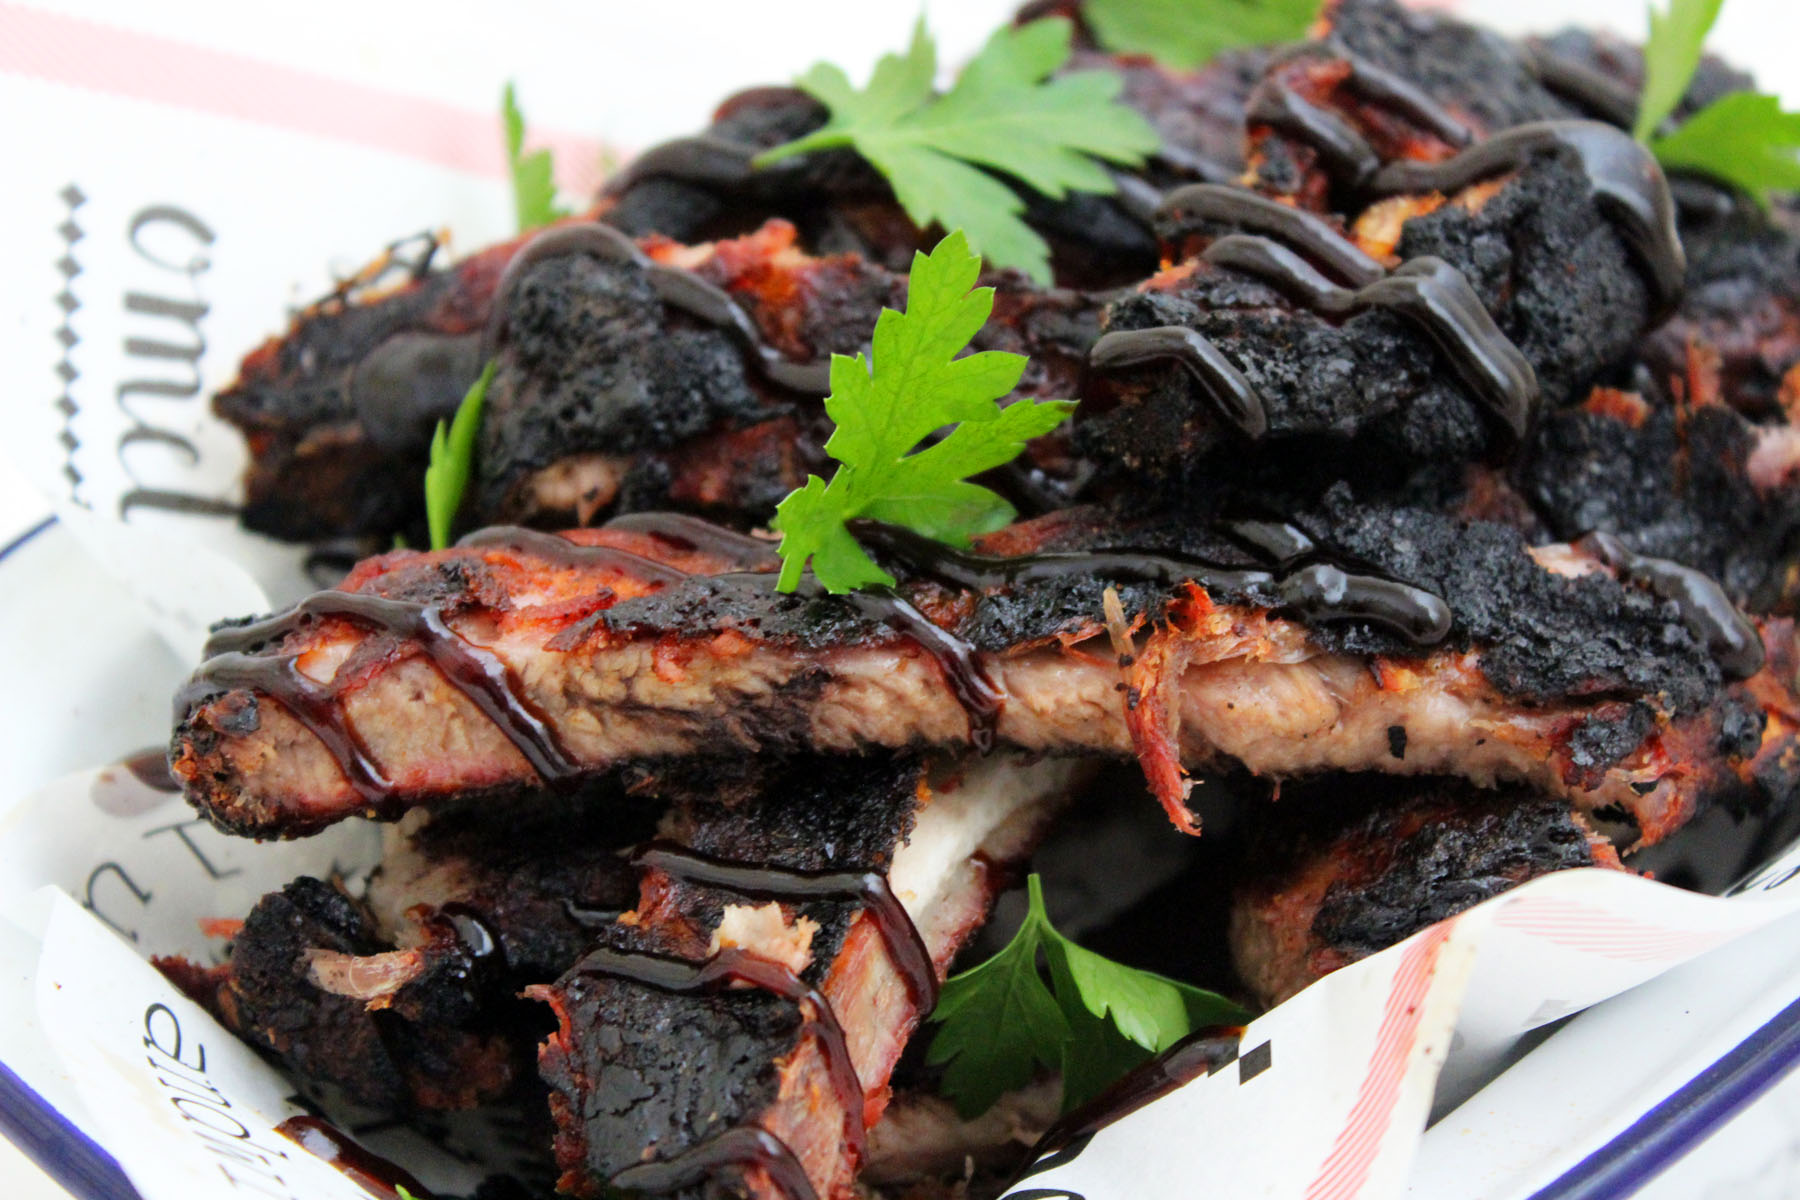 Smoked Barbecue Ribs, Memphis Style